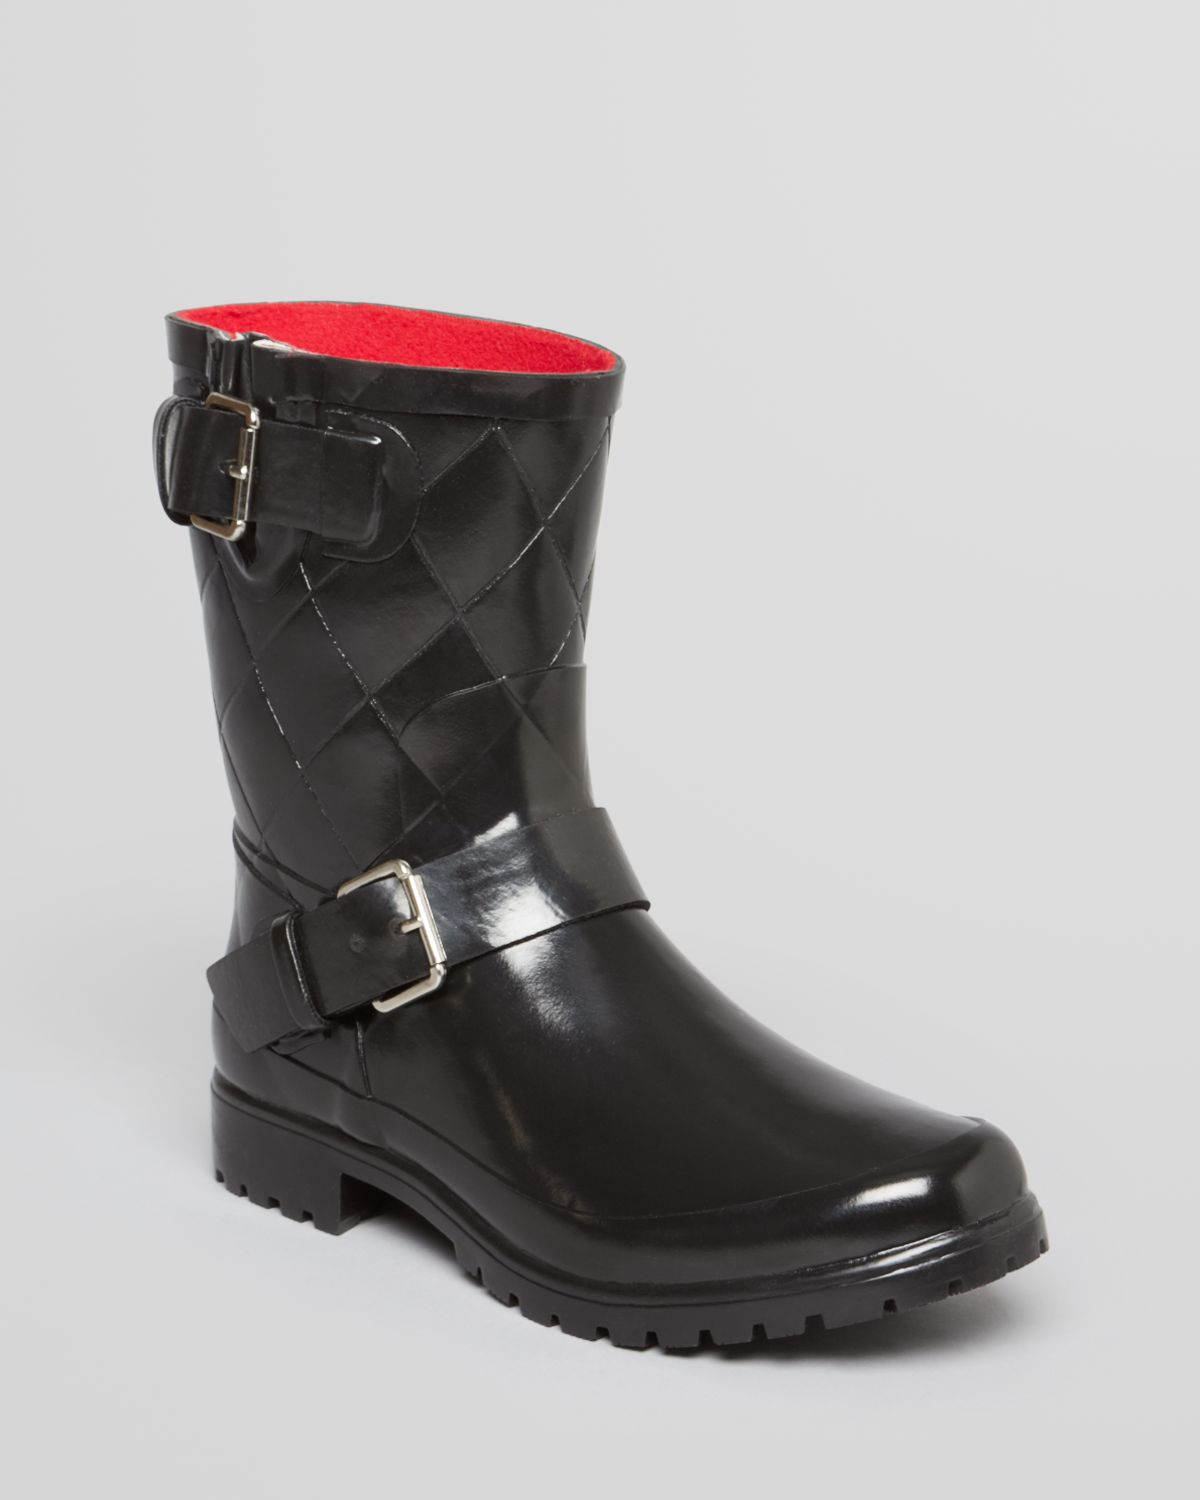 Sperry top-sider Moto Rain Boots Falcon Quilted in Black | Lyst